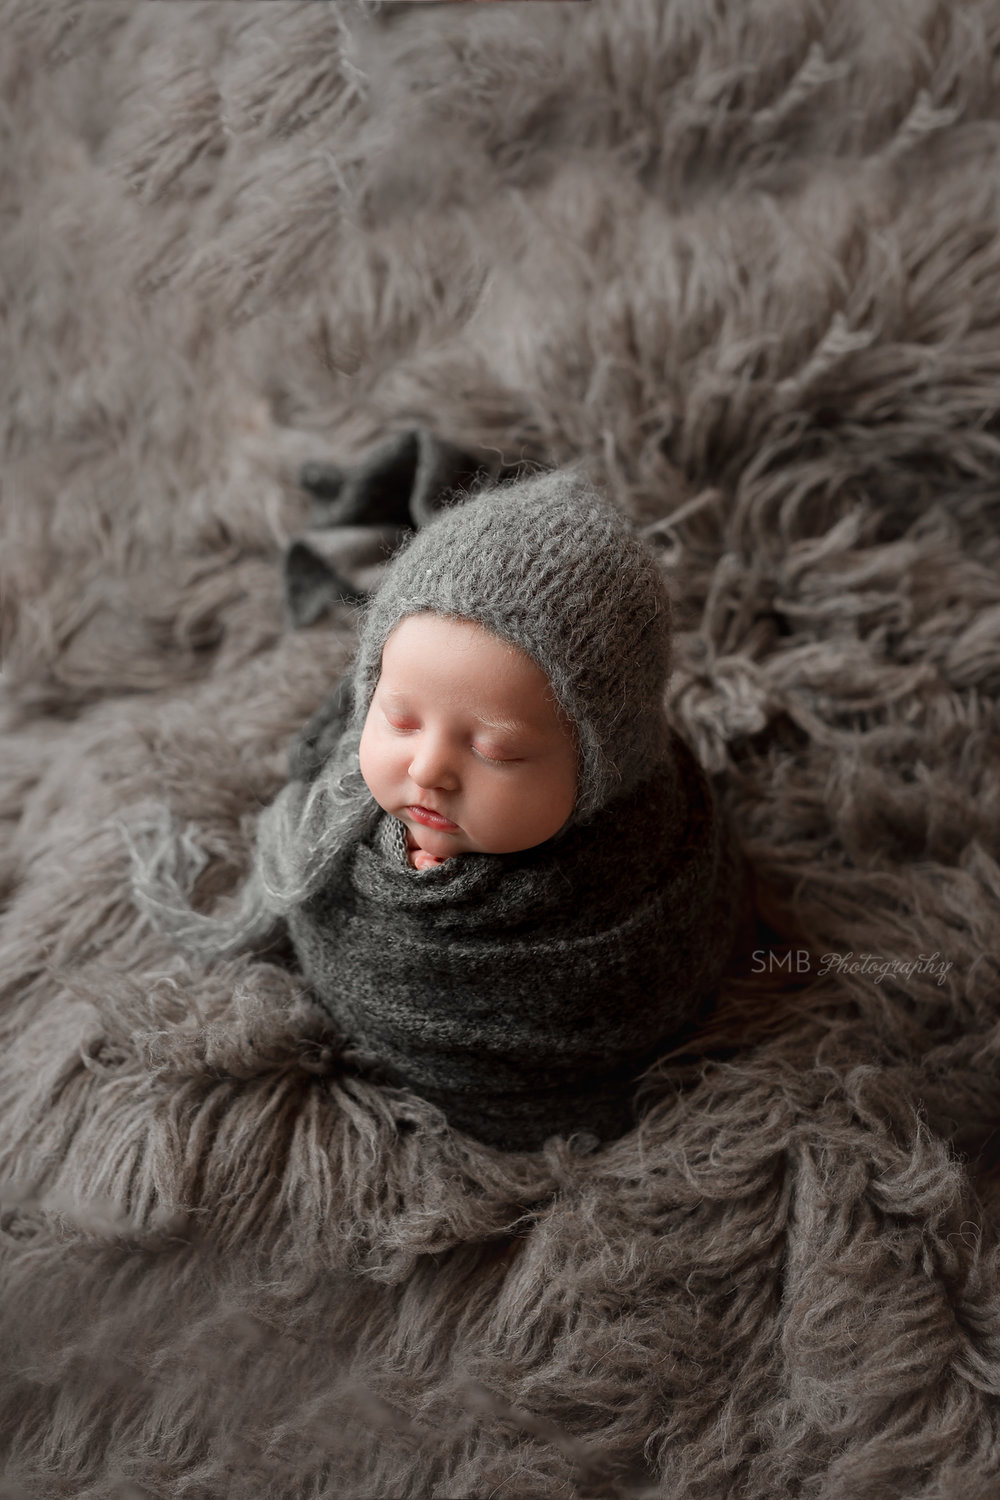 Newborn wrapped in charcoal wrap on gray fur